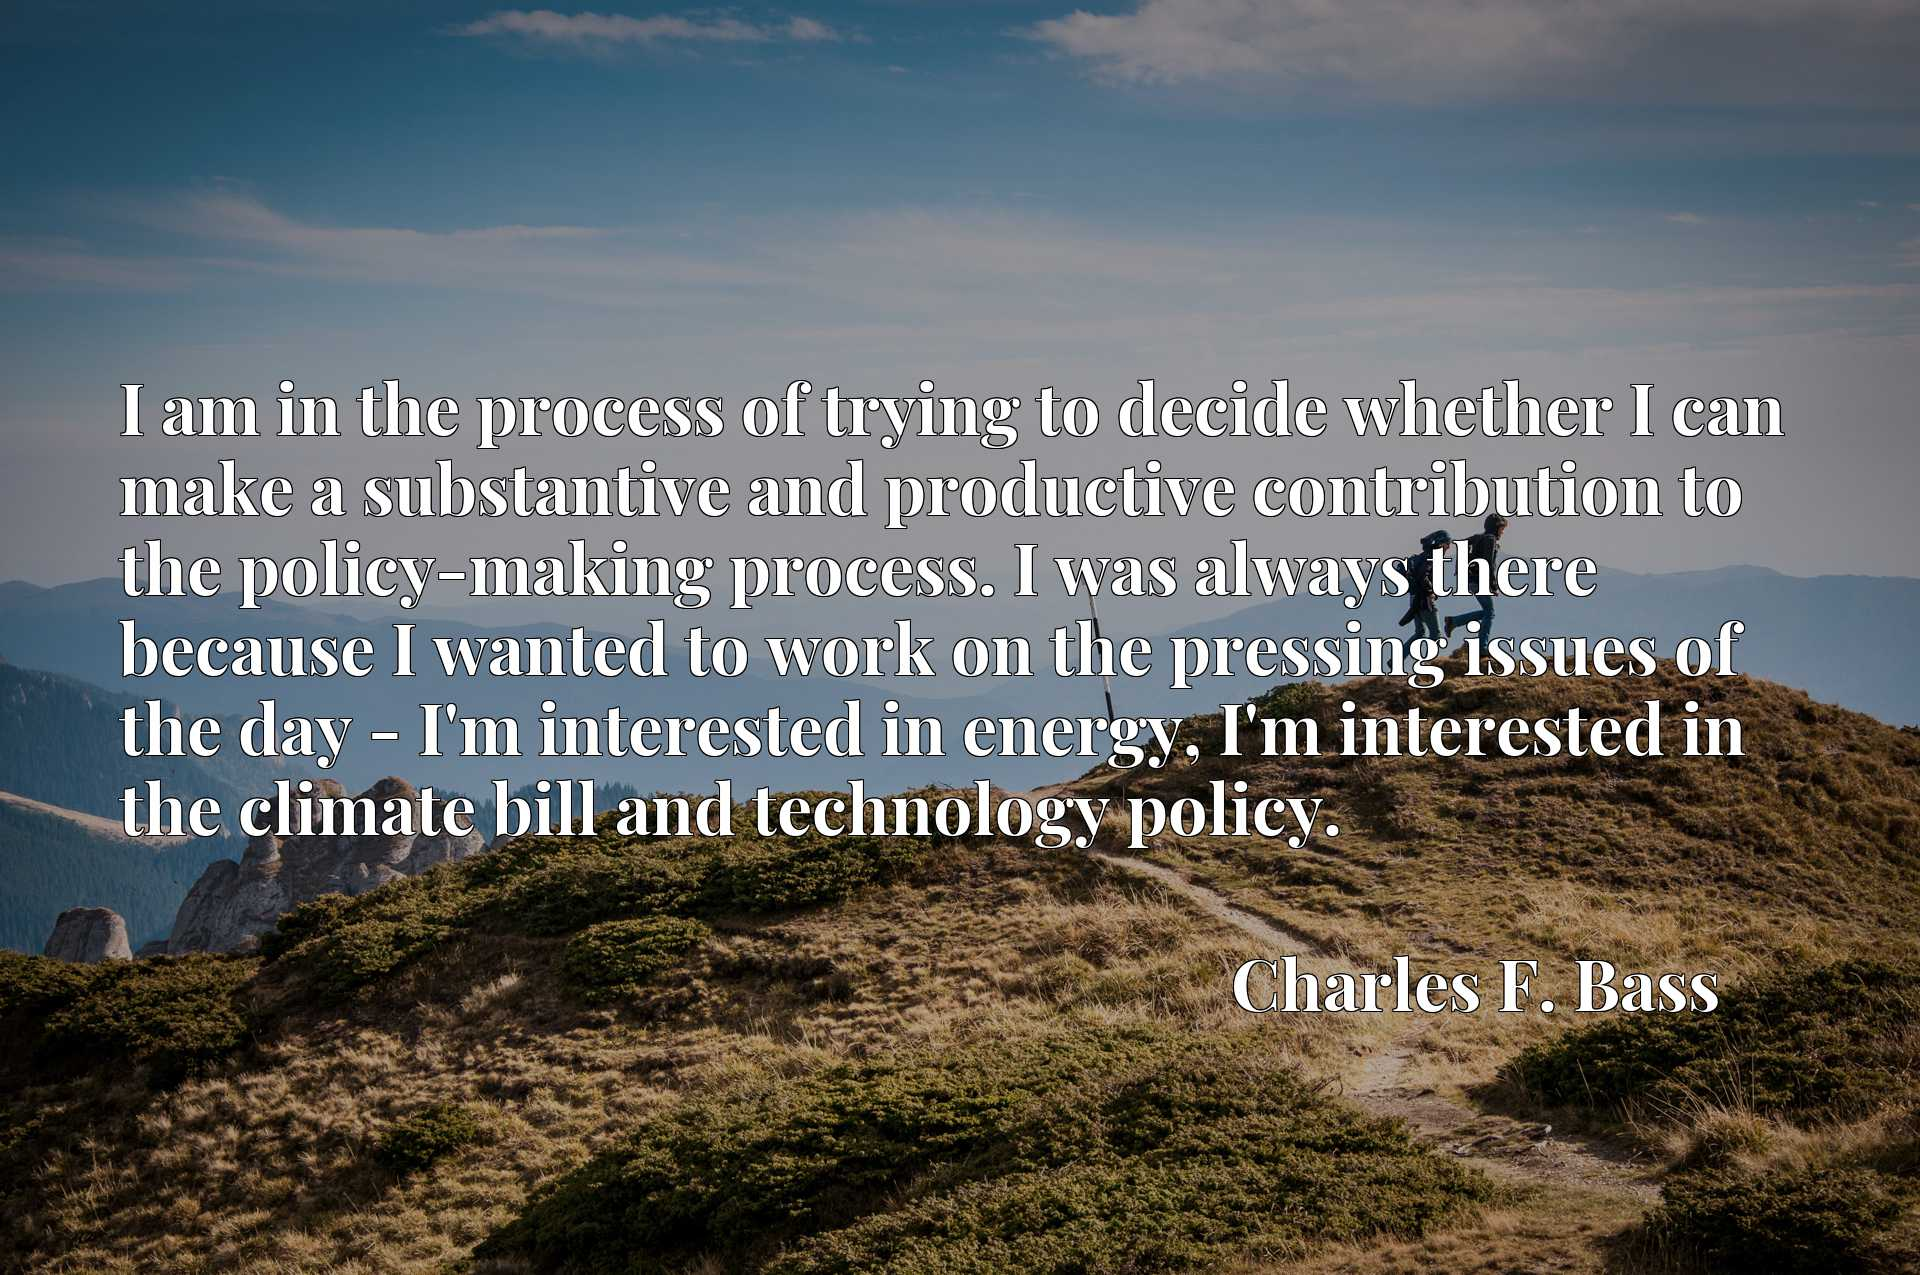 I am in the process of trying to decide whether I can make a substantive and productive contribution to the policy-making process. I was always there because I wanted to work on the pressing issues of the day - I'm interested in energy, I'm interested in the climate bill and technology policy.